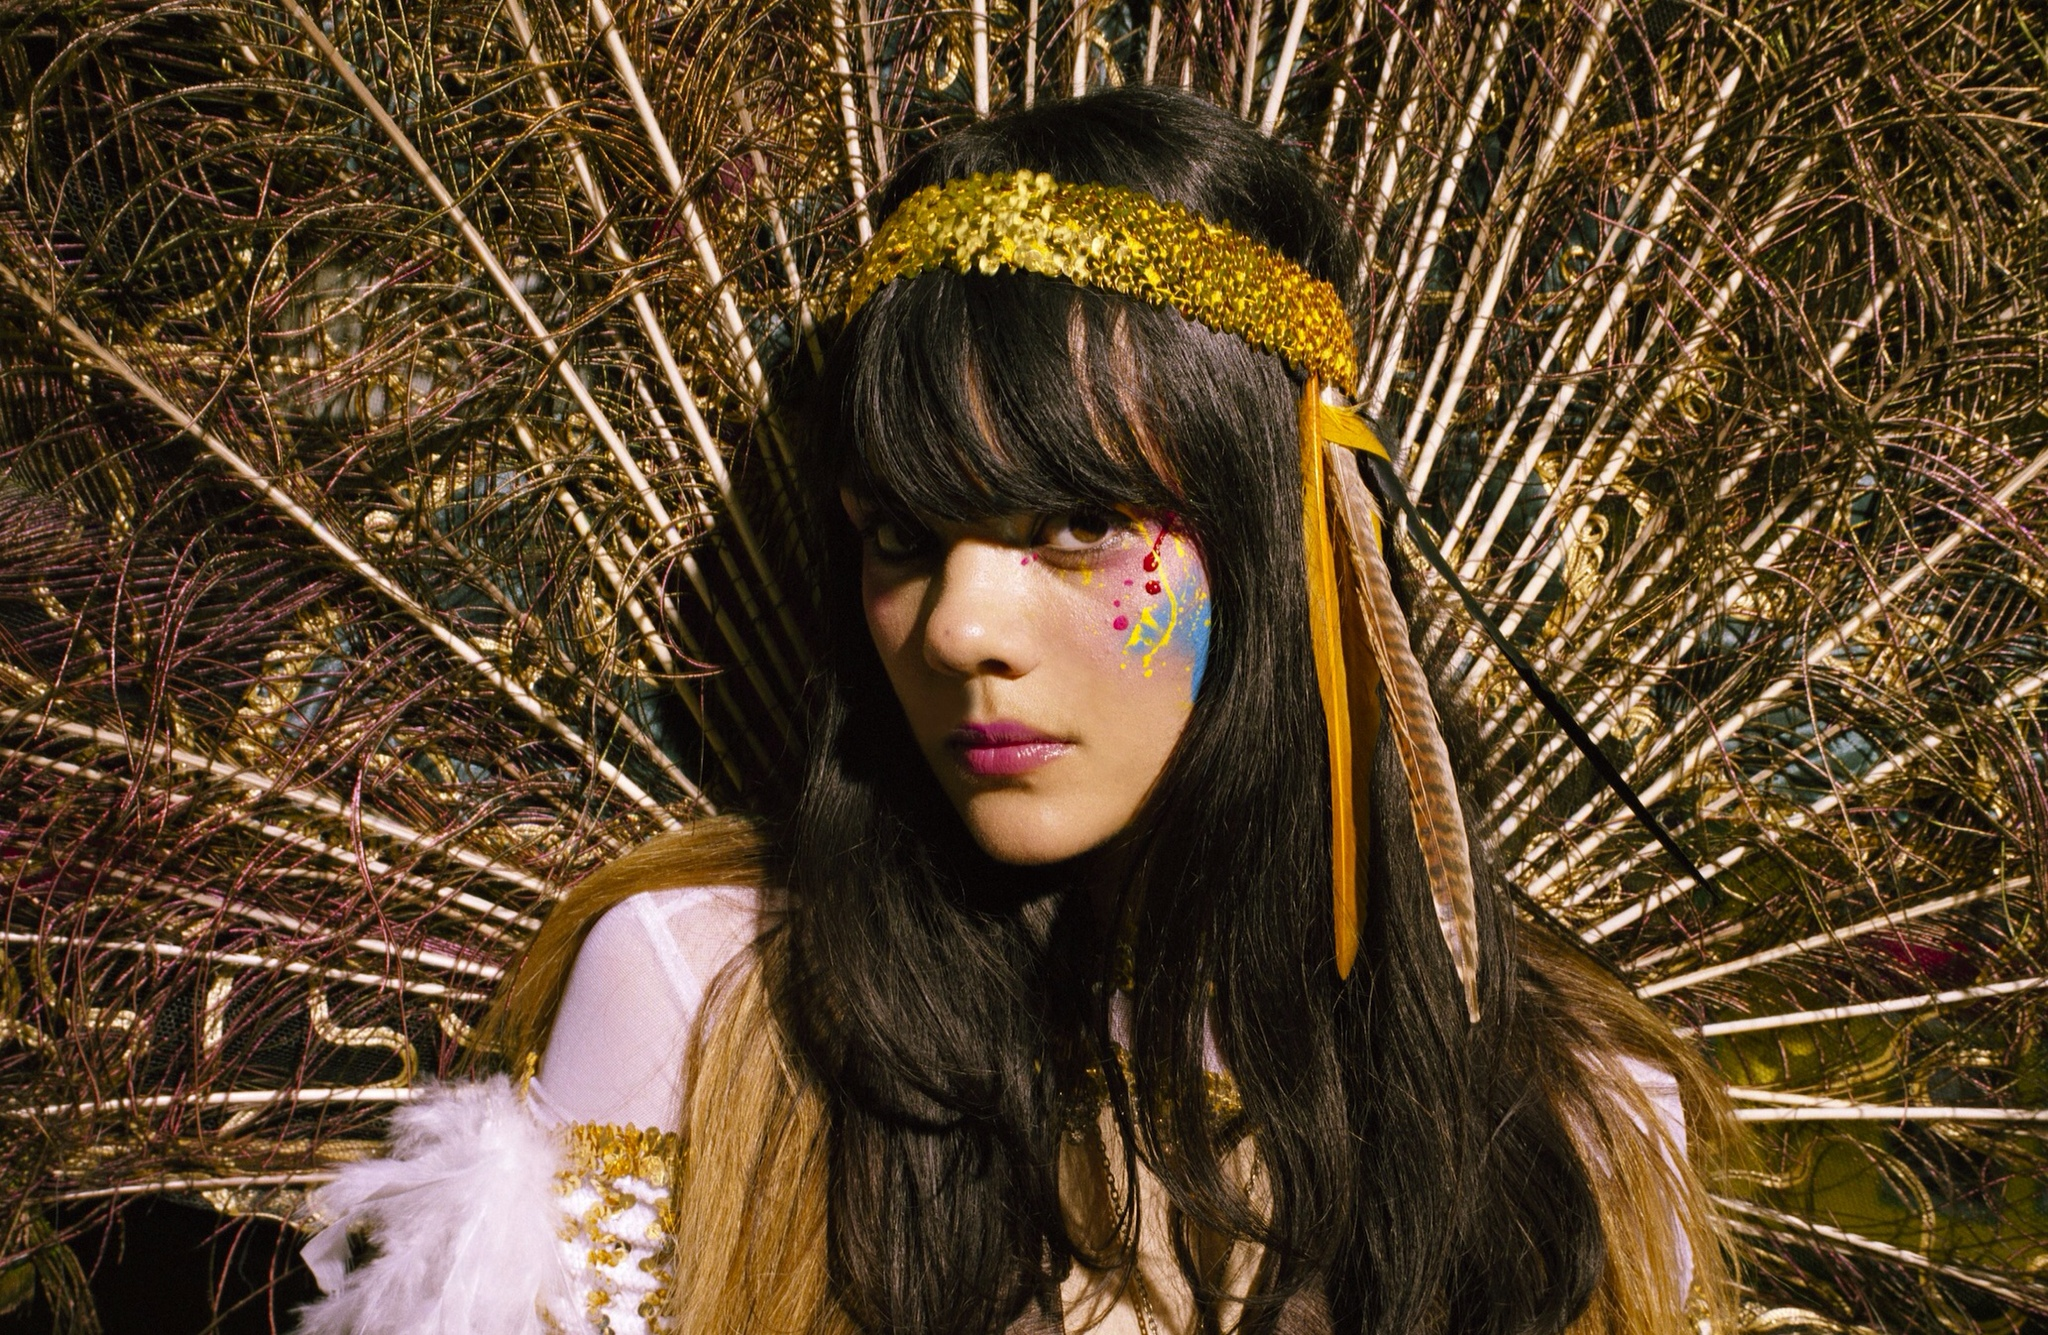 Sugerencia musical: Bat For Lashes